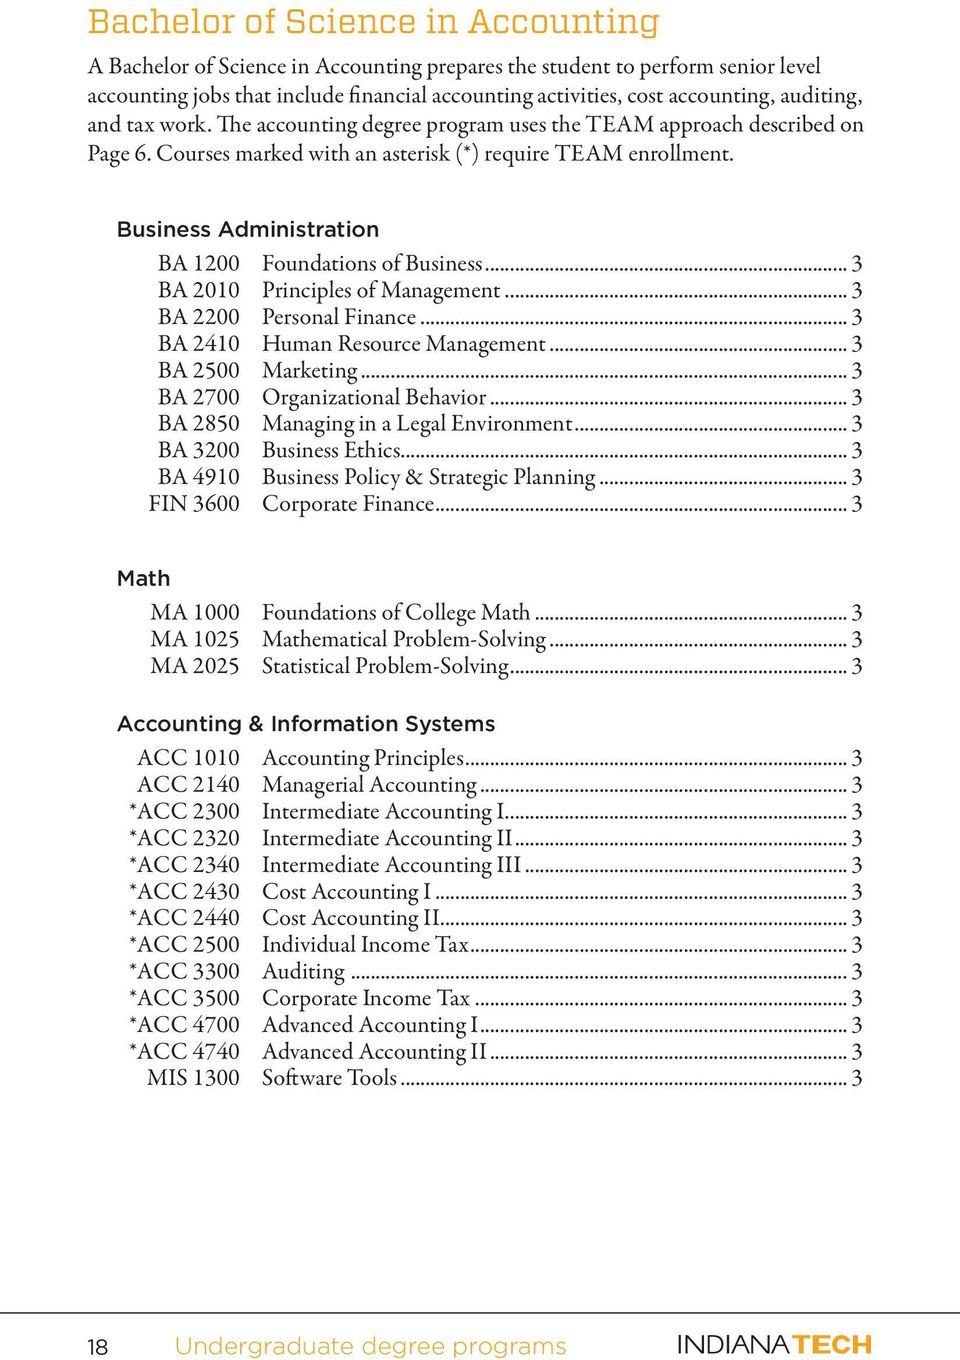 Business Administration BA 1200 Foundations of Business... 3 BA 2010 Principles of Management... 3 BA 2200 Personal Finance... 3 BA 2410 Human Resource Management... 3 BA 2500 Marketing.